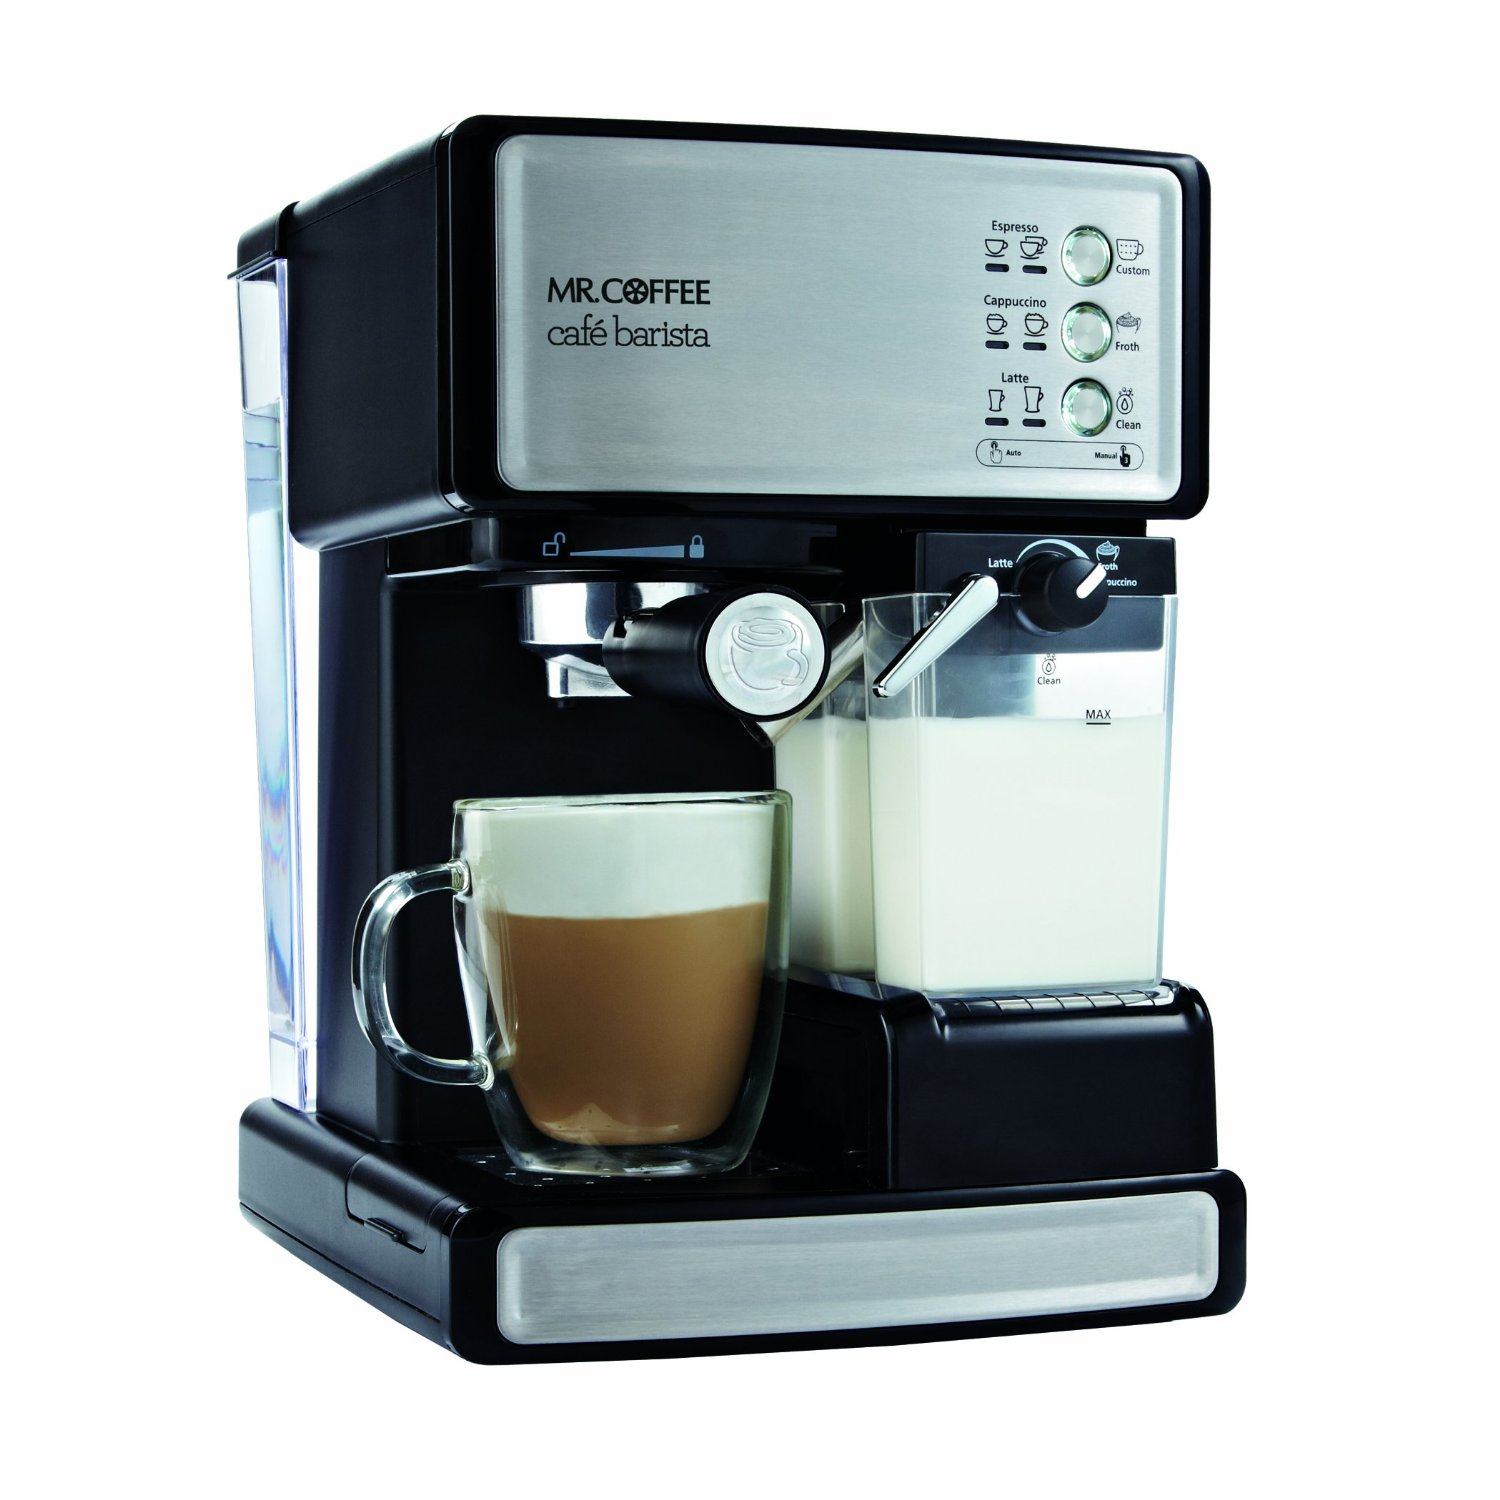 Mr. Coffee BVMC-ECMP1000 Caf� Barista Espresso Maker, Without Free Sample: Semi Automatic Pump Espresso Machines